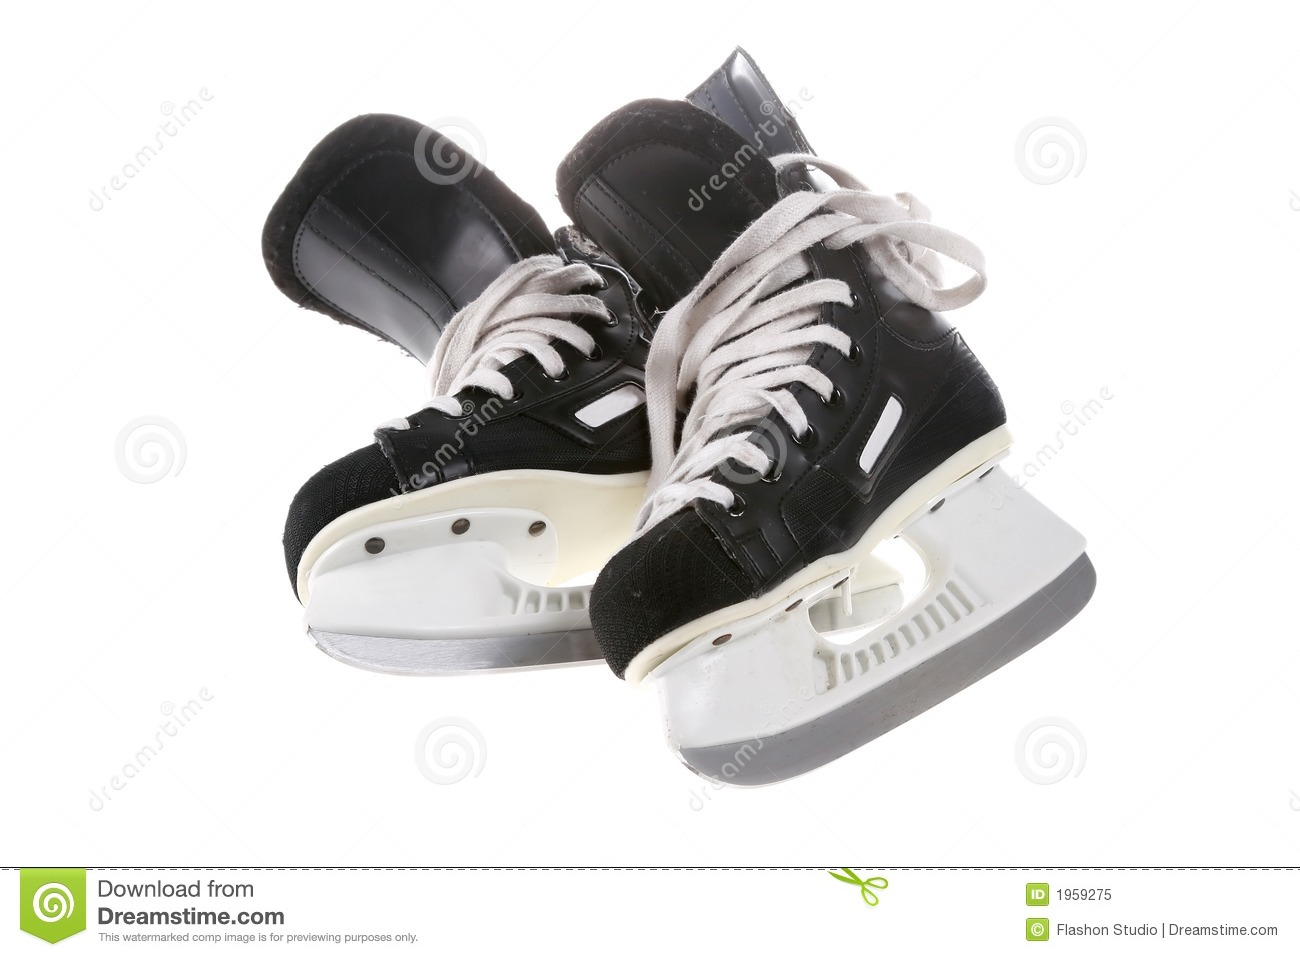 Hockey Skates Royalty Free Stock Photo - Image: 1959275